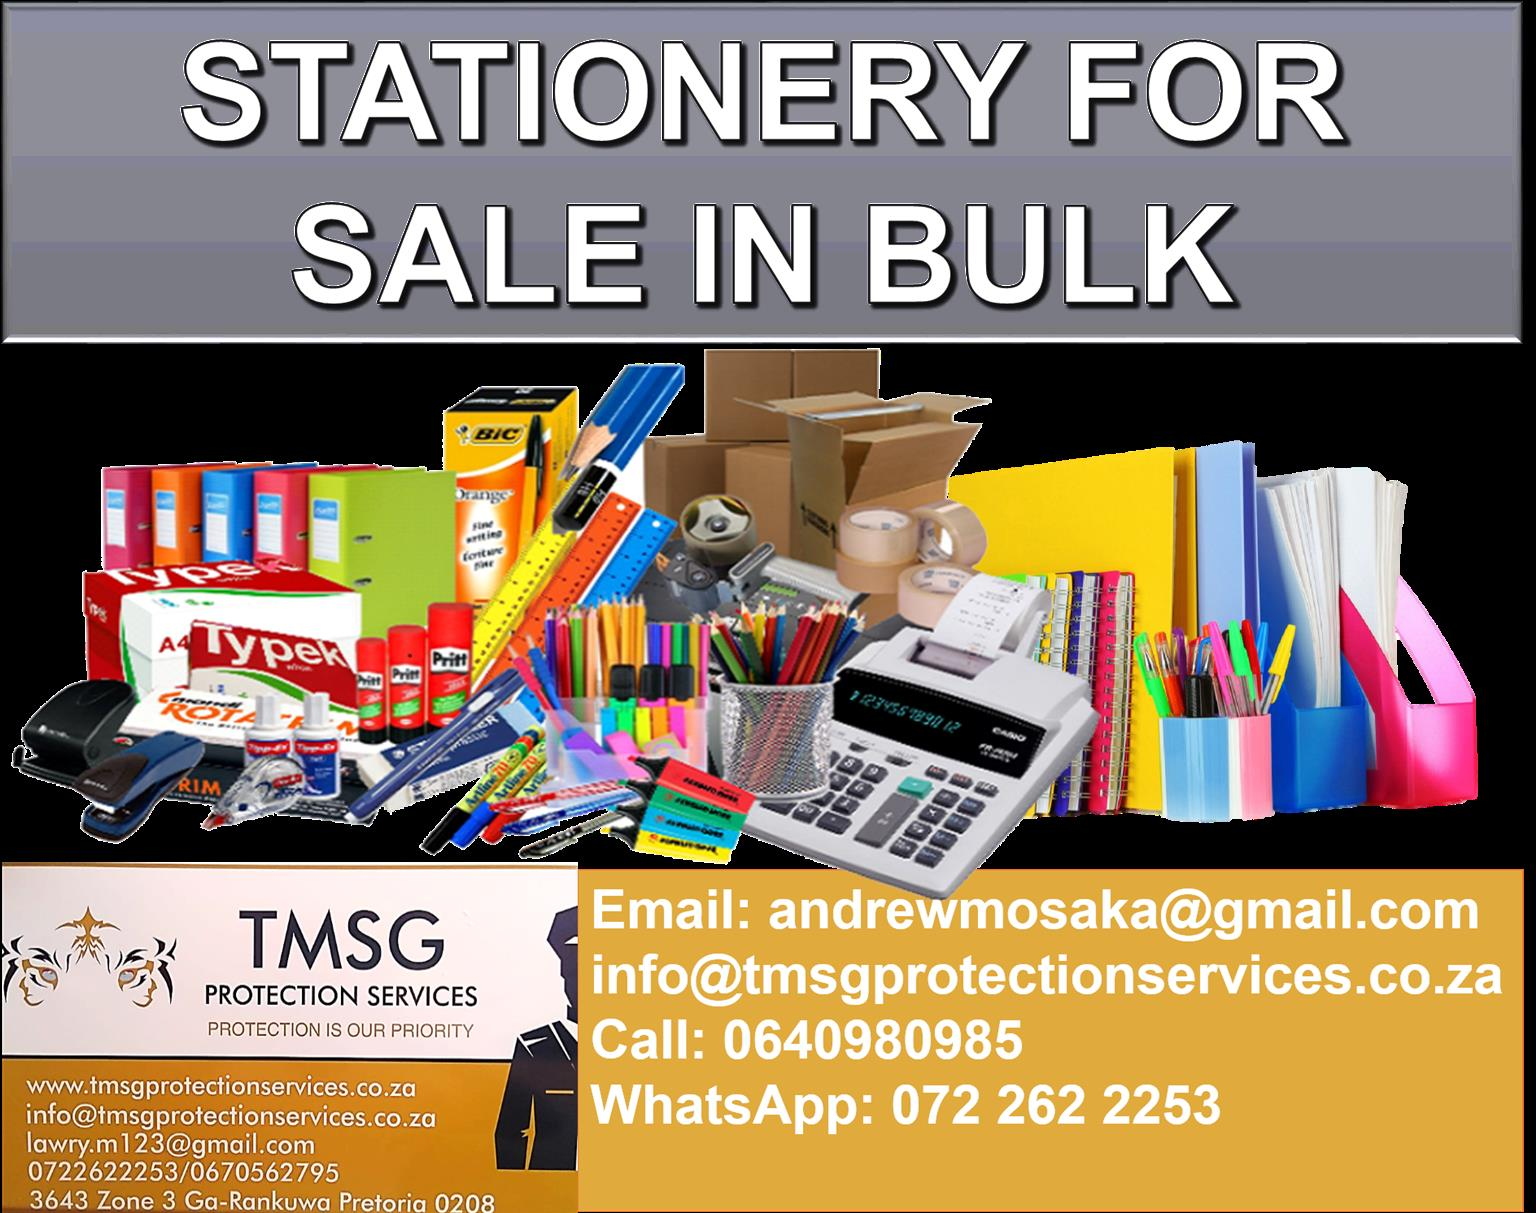 Stationery for sale in Bulk